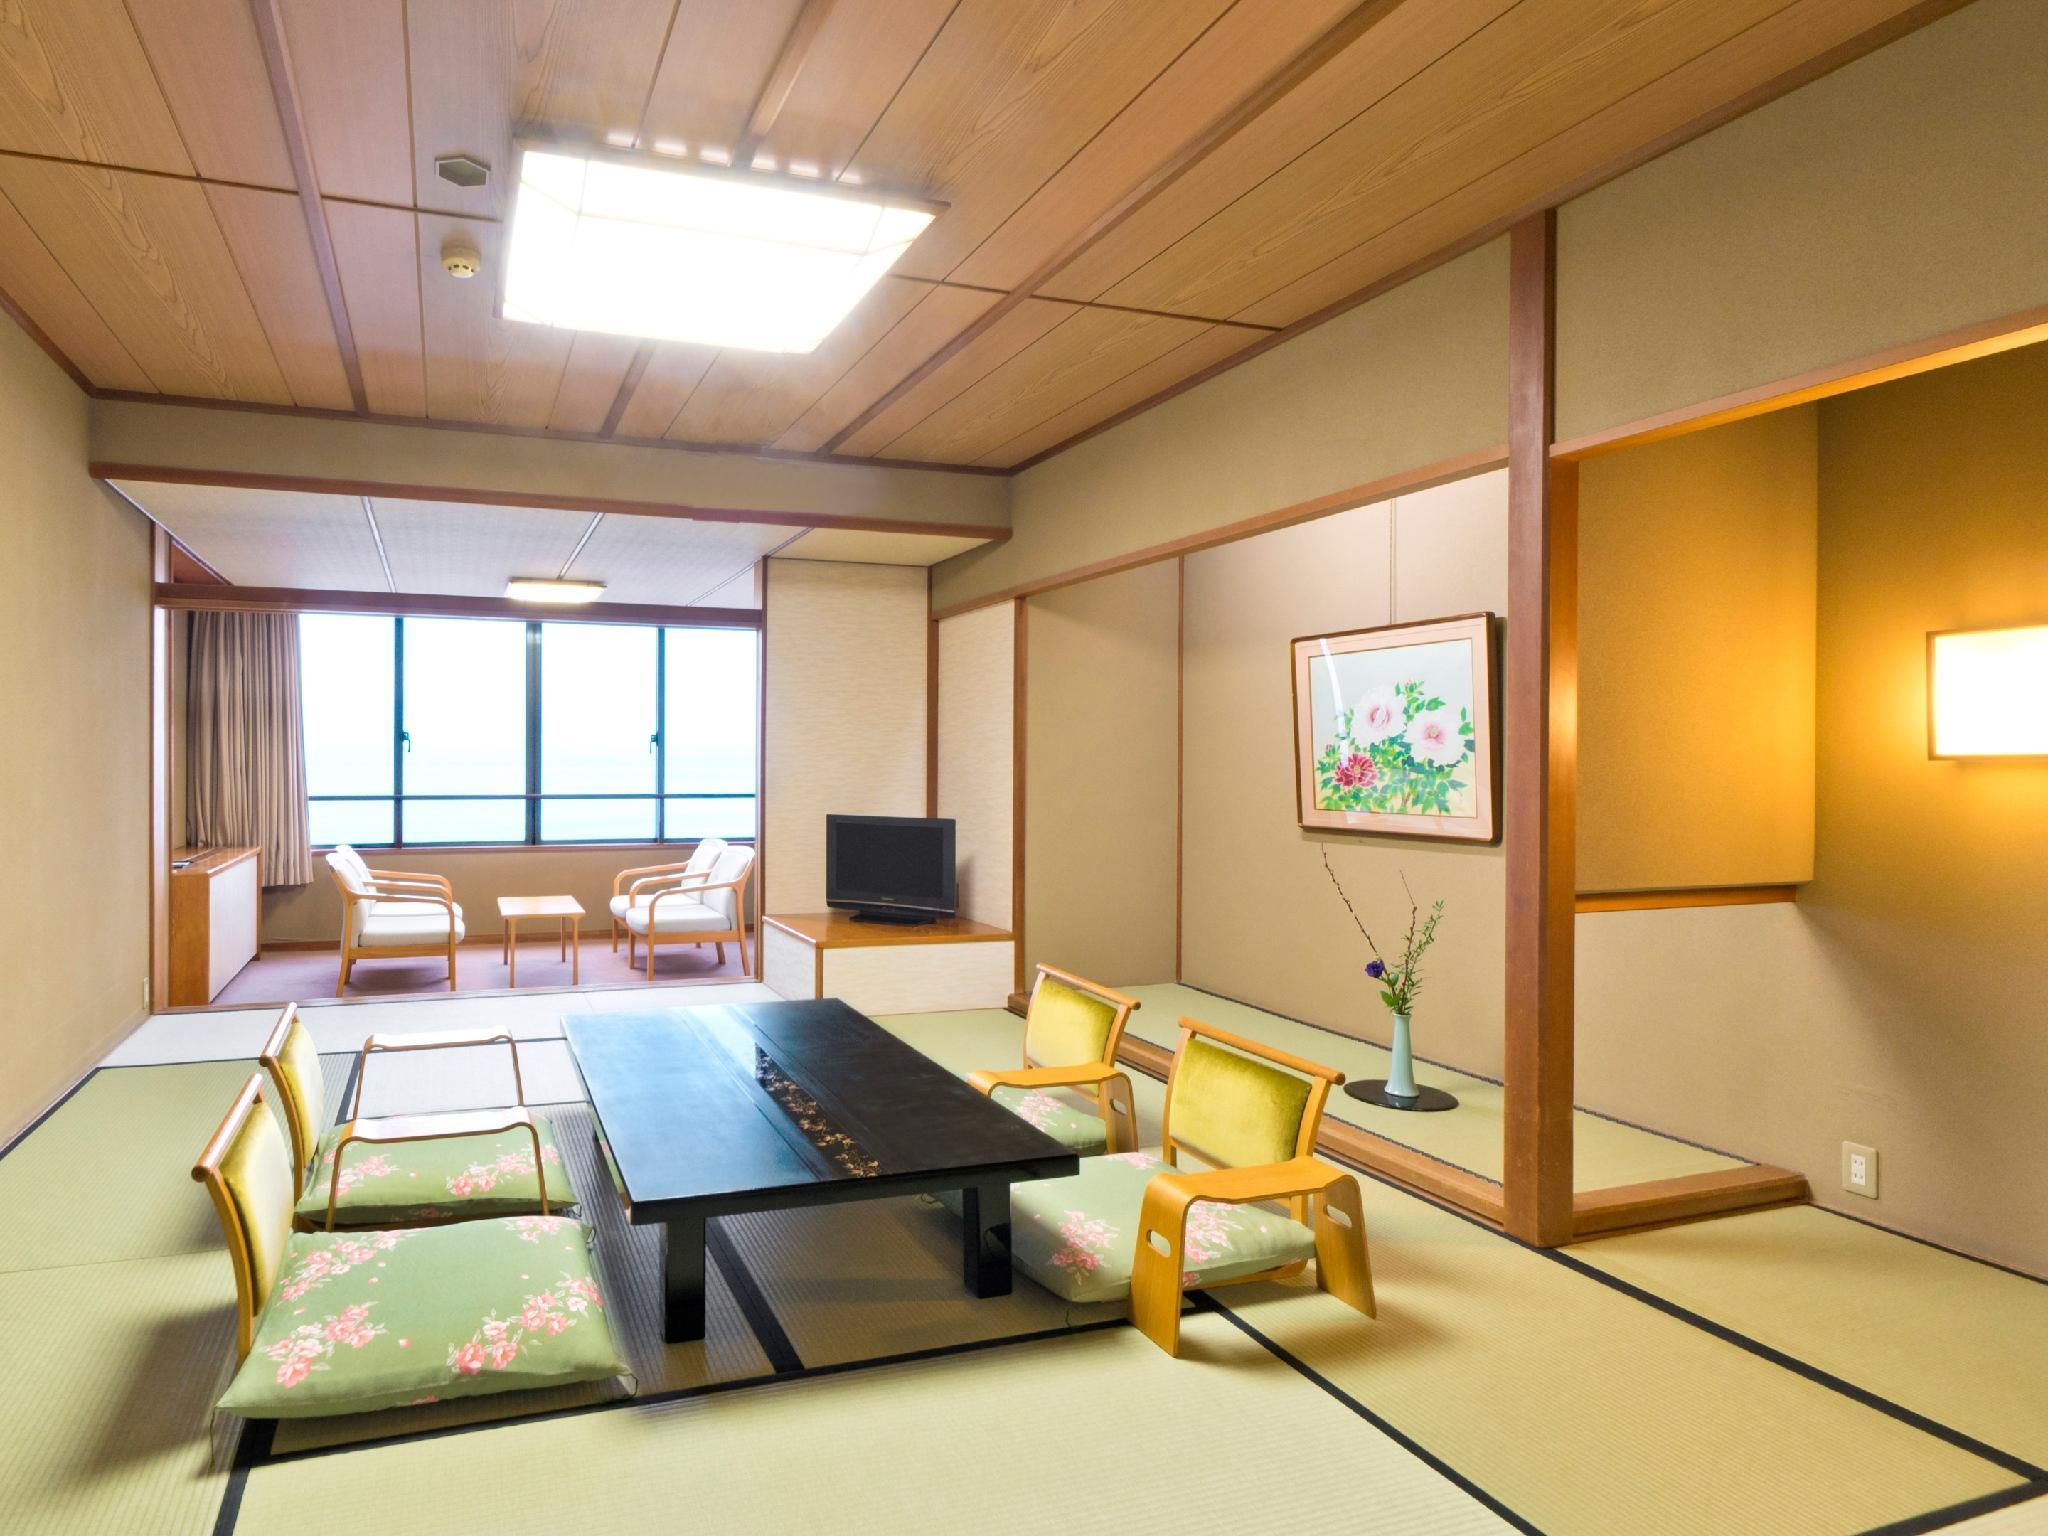 和室房・西之風・晚餐地點: 包廂茶寮 (Japanese-style Room (Nishi-no-Kaze Wing) *Private dining)